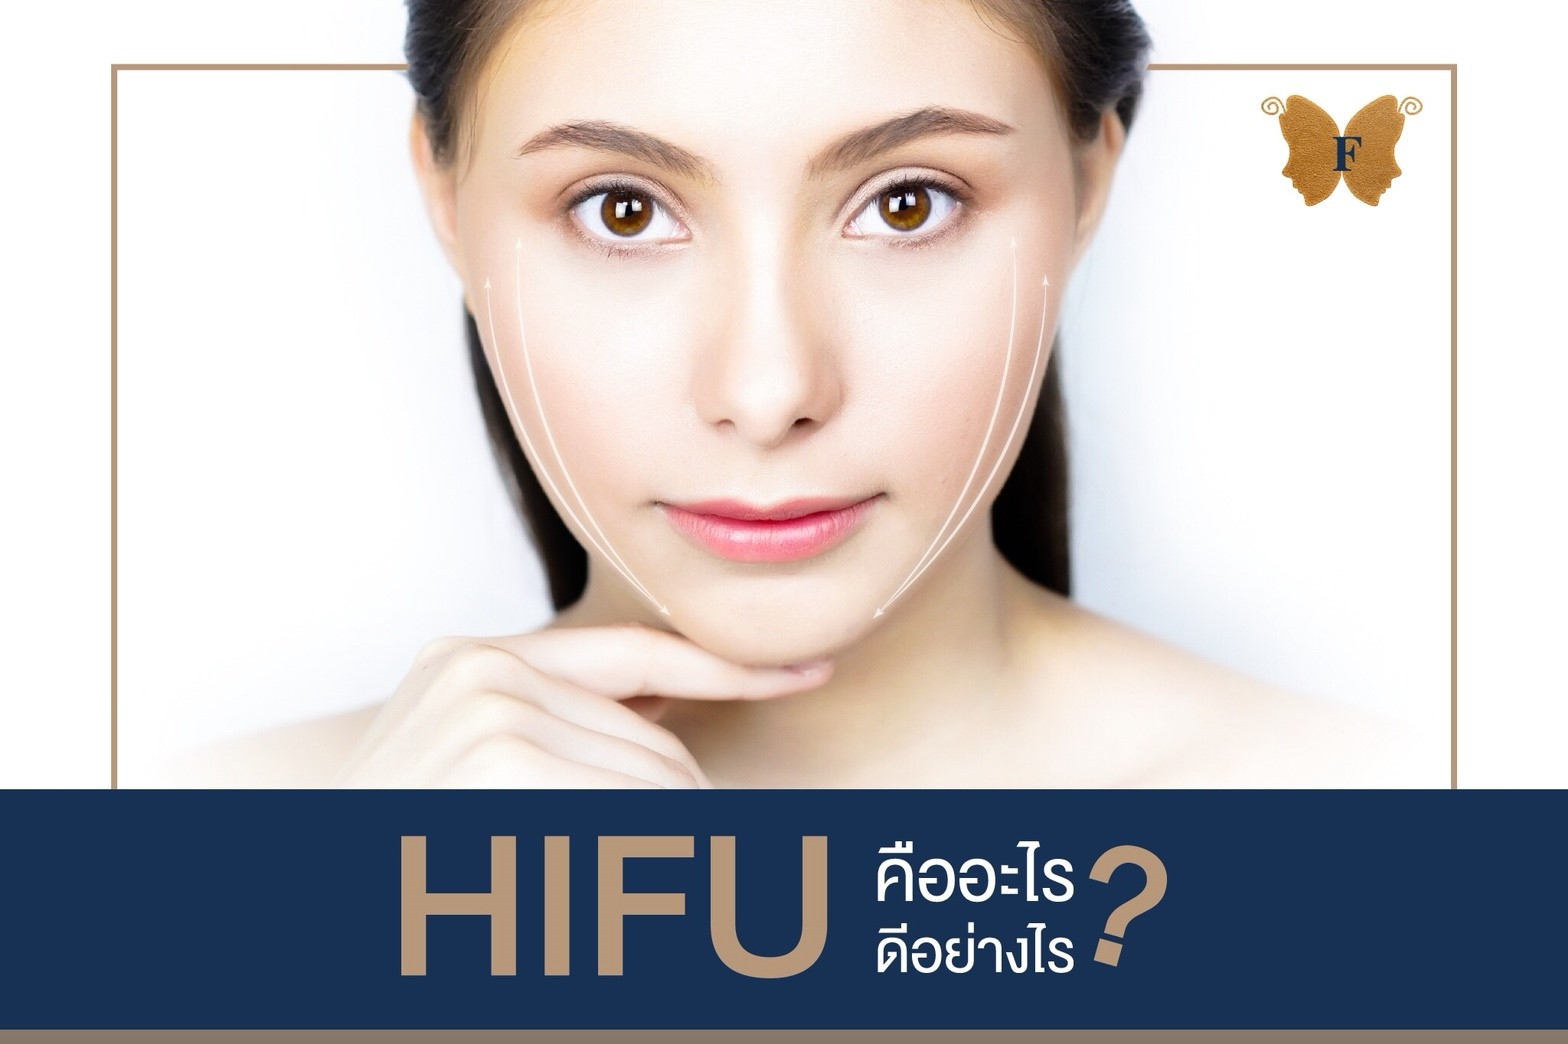 What is HIFU? What treatment?